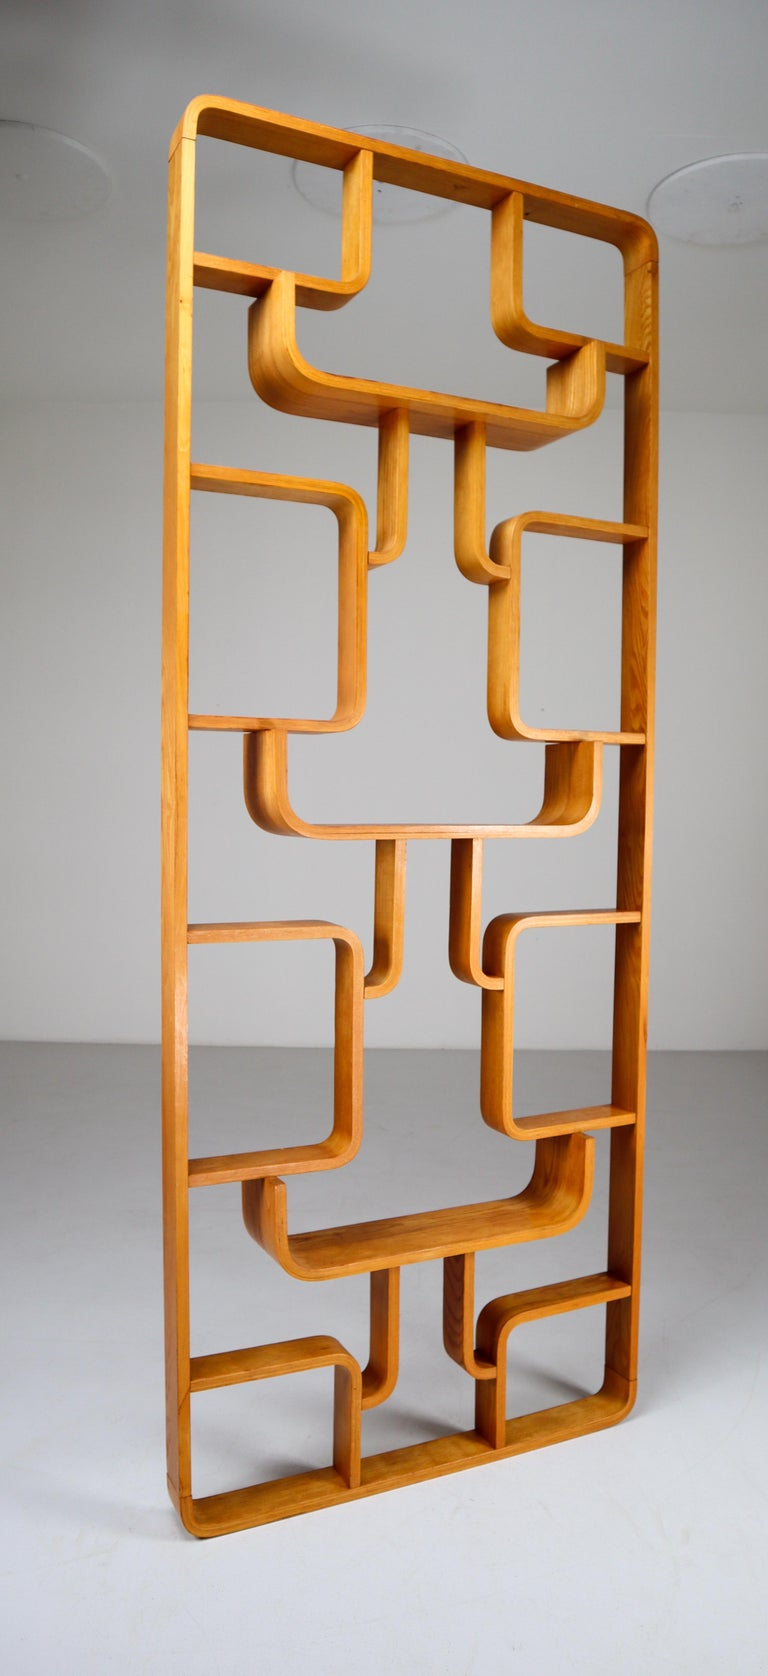 Plywood Midcentury Room Divider Shelves in Bent-Wood Praque, 1950s For Sale